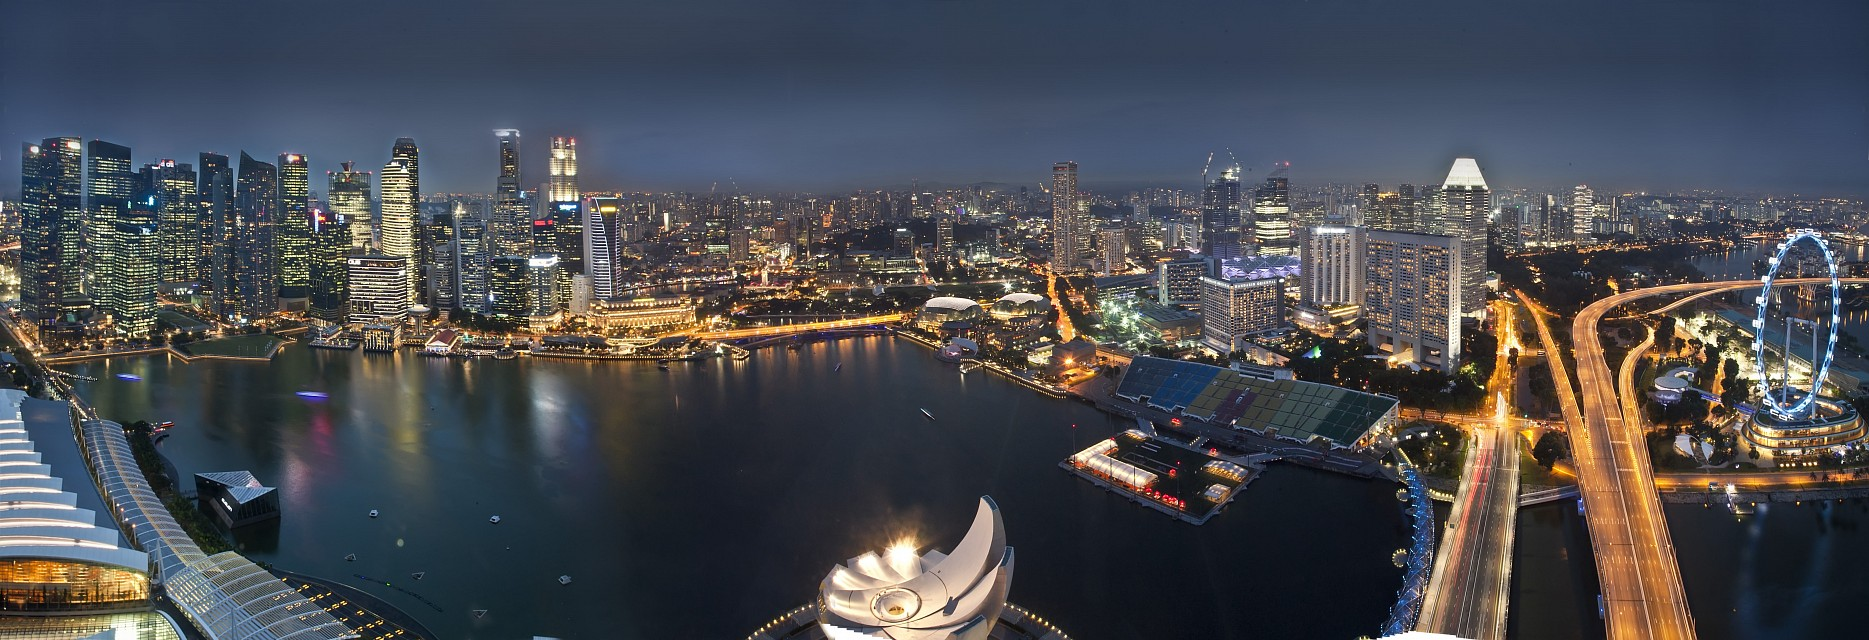 Singapore as seen from